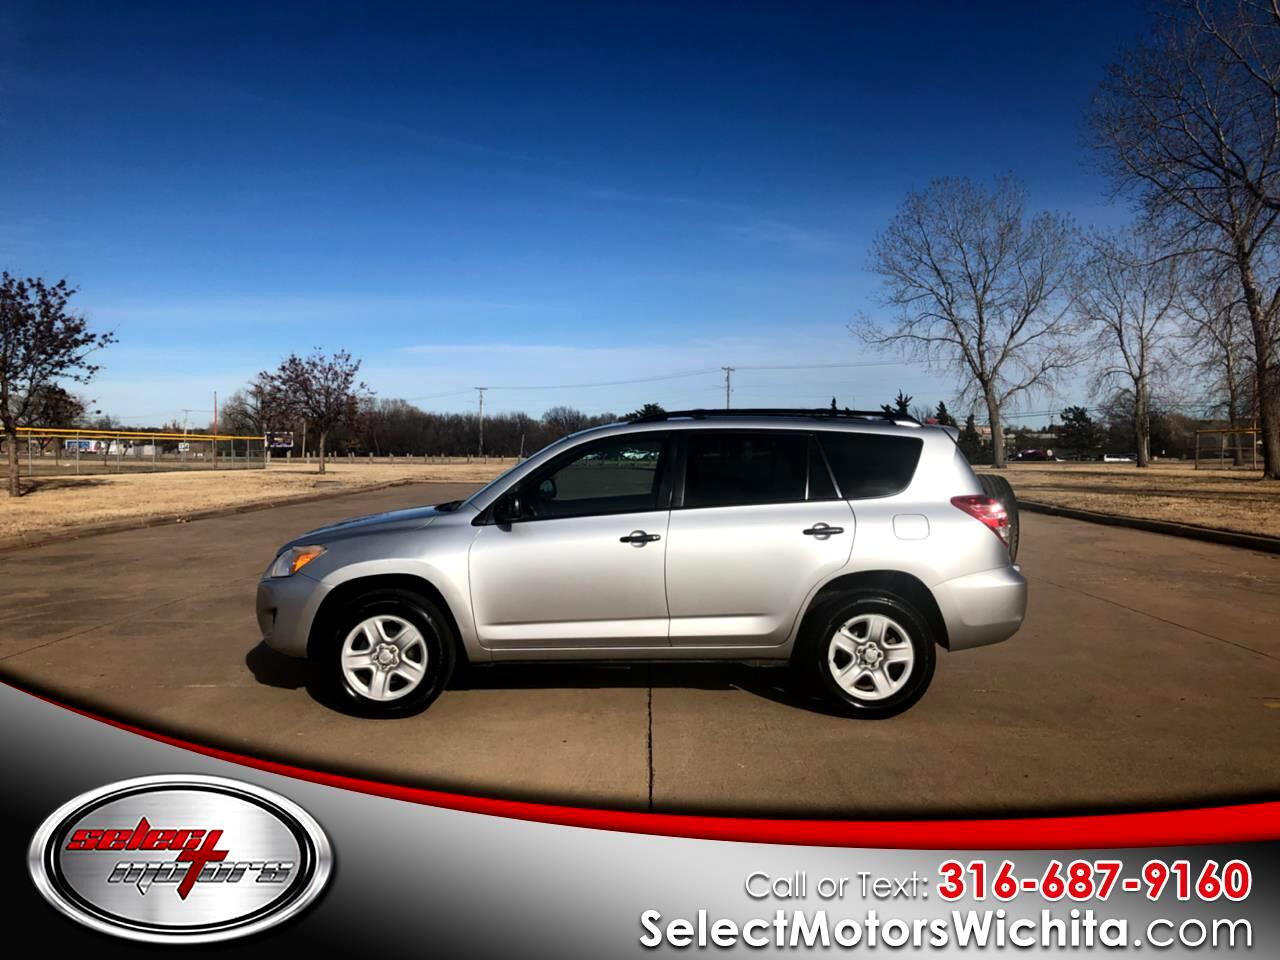 2011 Toyota RAV4 4WD 4dr 4-cyl 4-Spd AT (Natl)